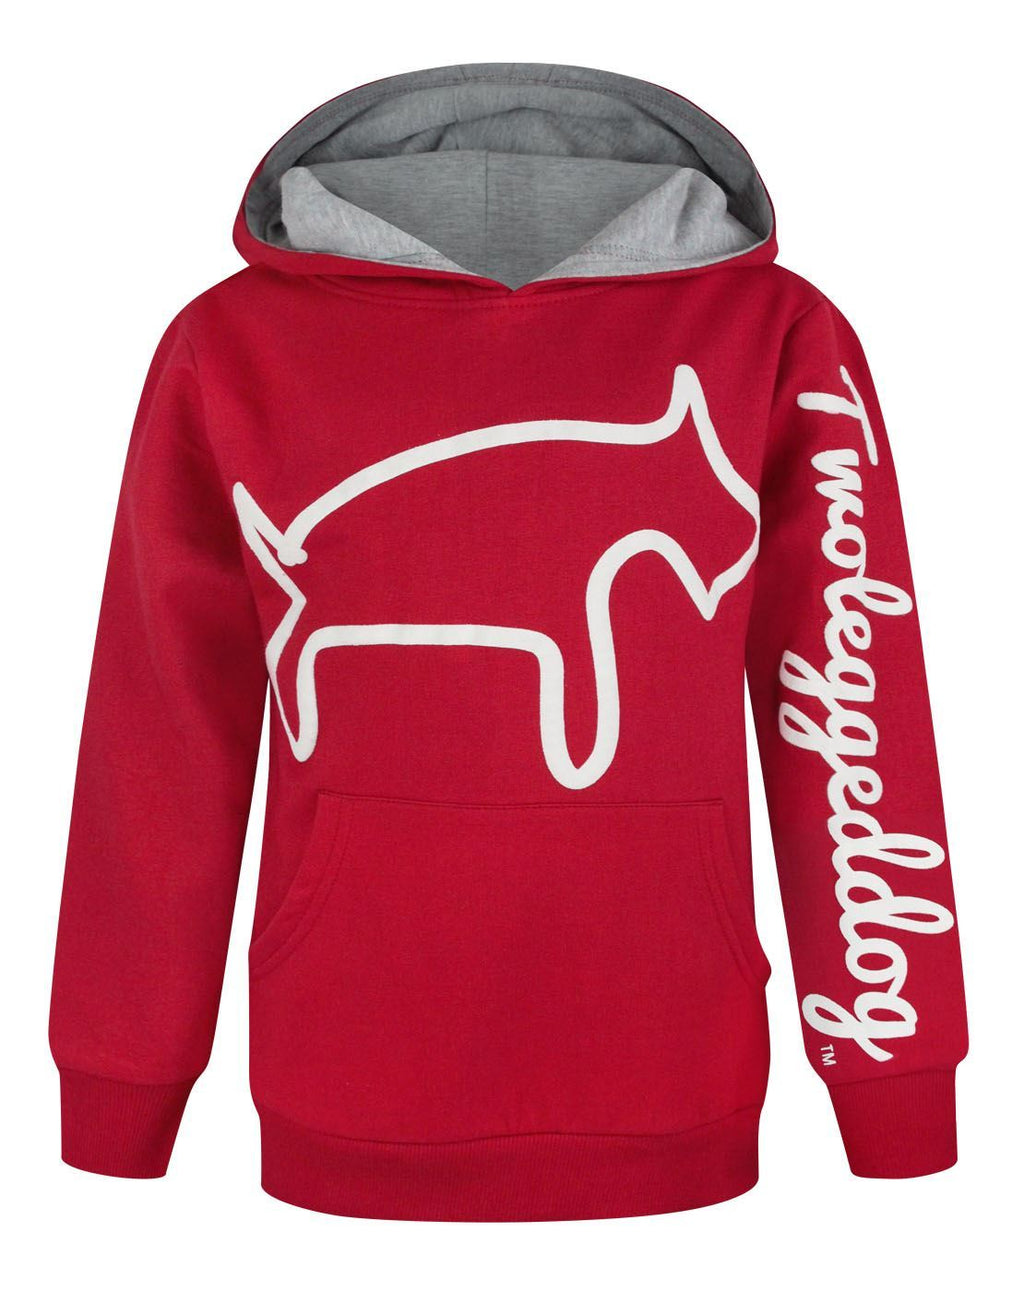 Two Legged Dog Puff Print Boy's Hoodie